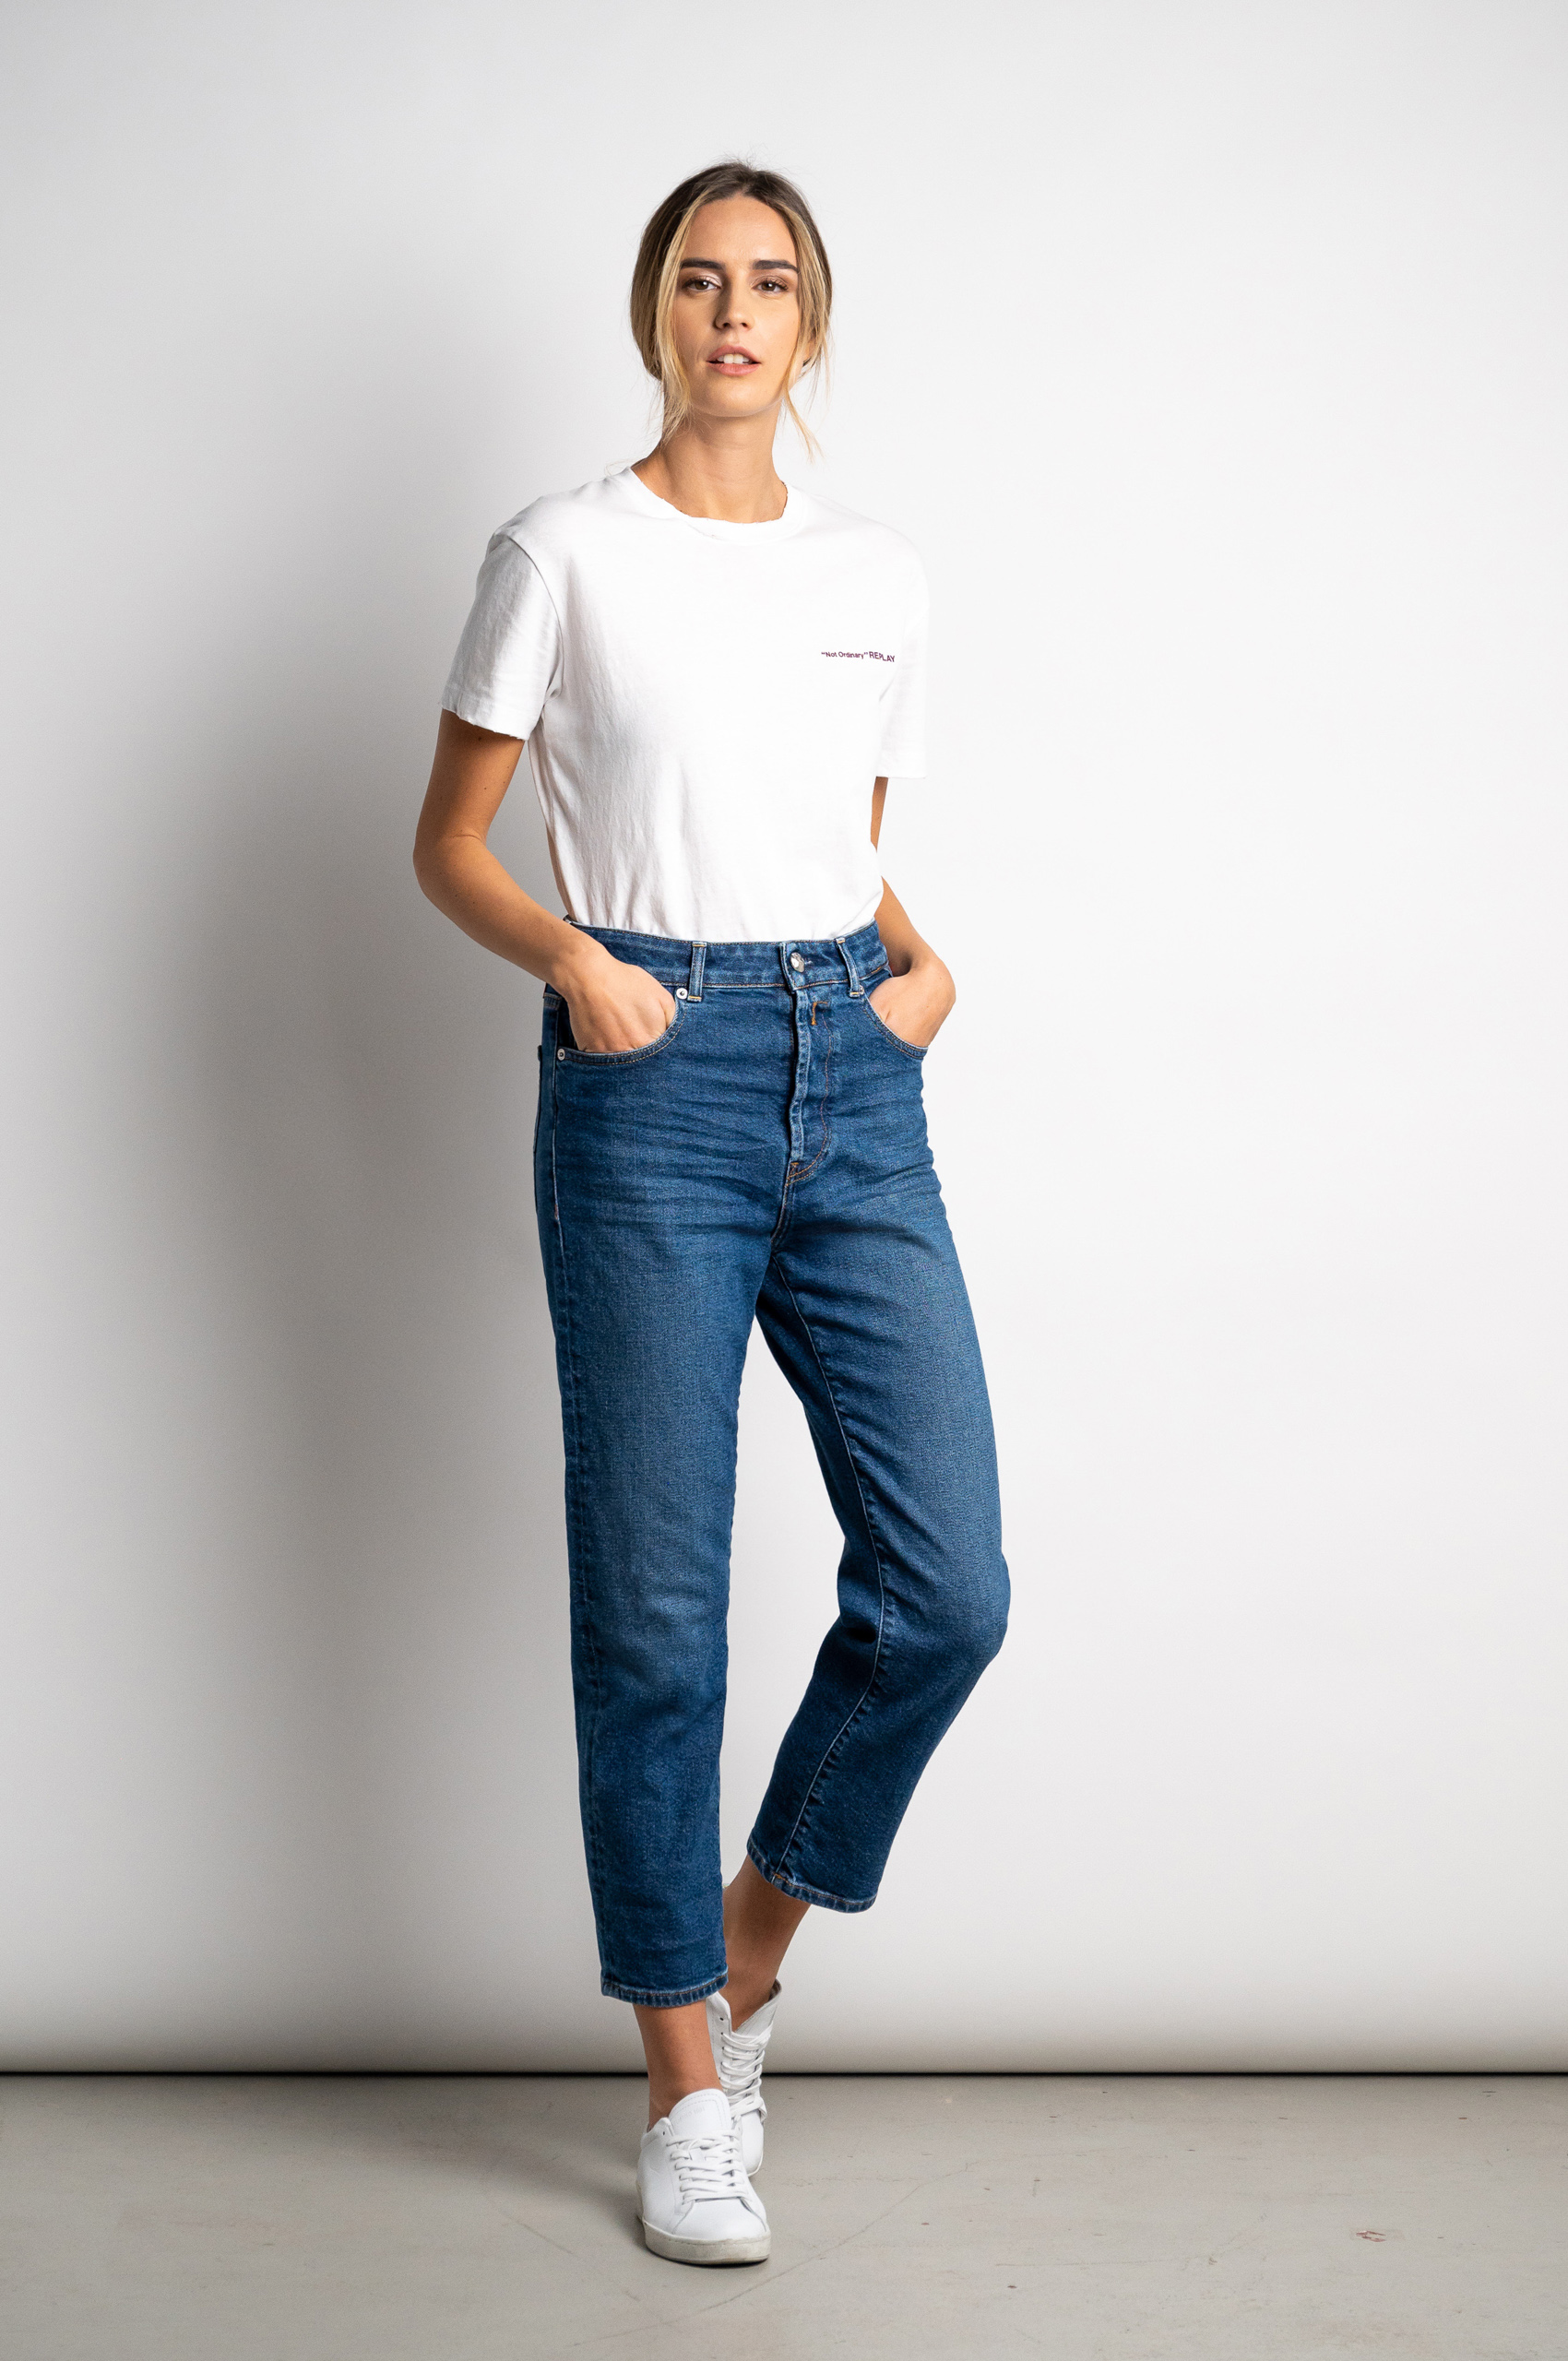 mom jeans fit guide women